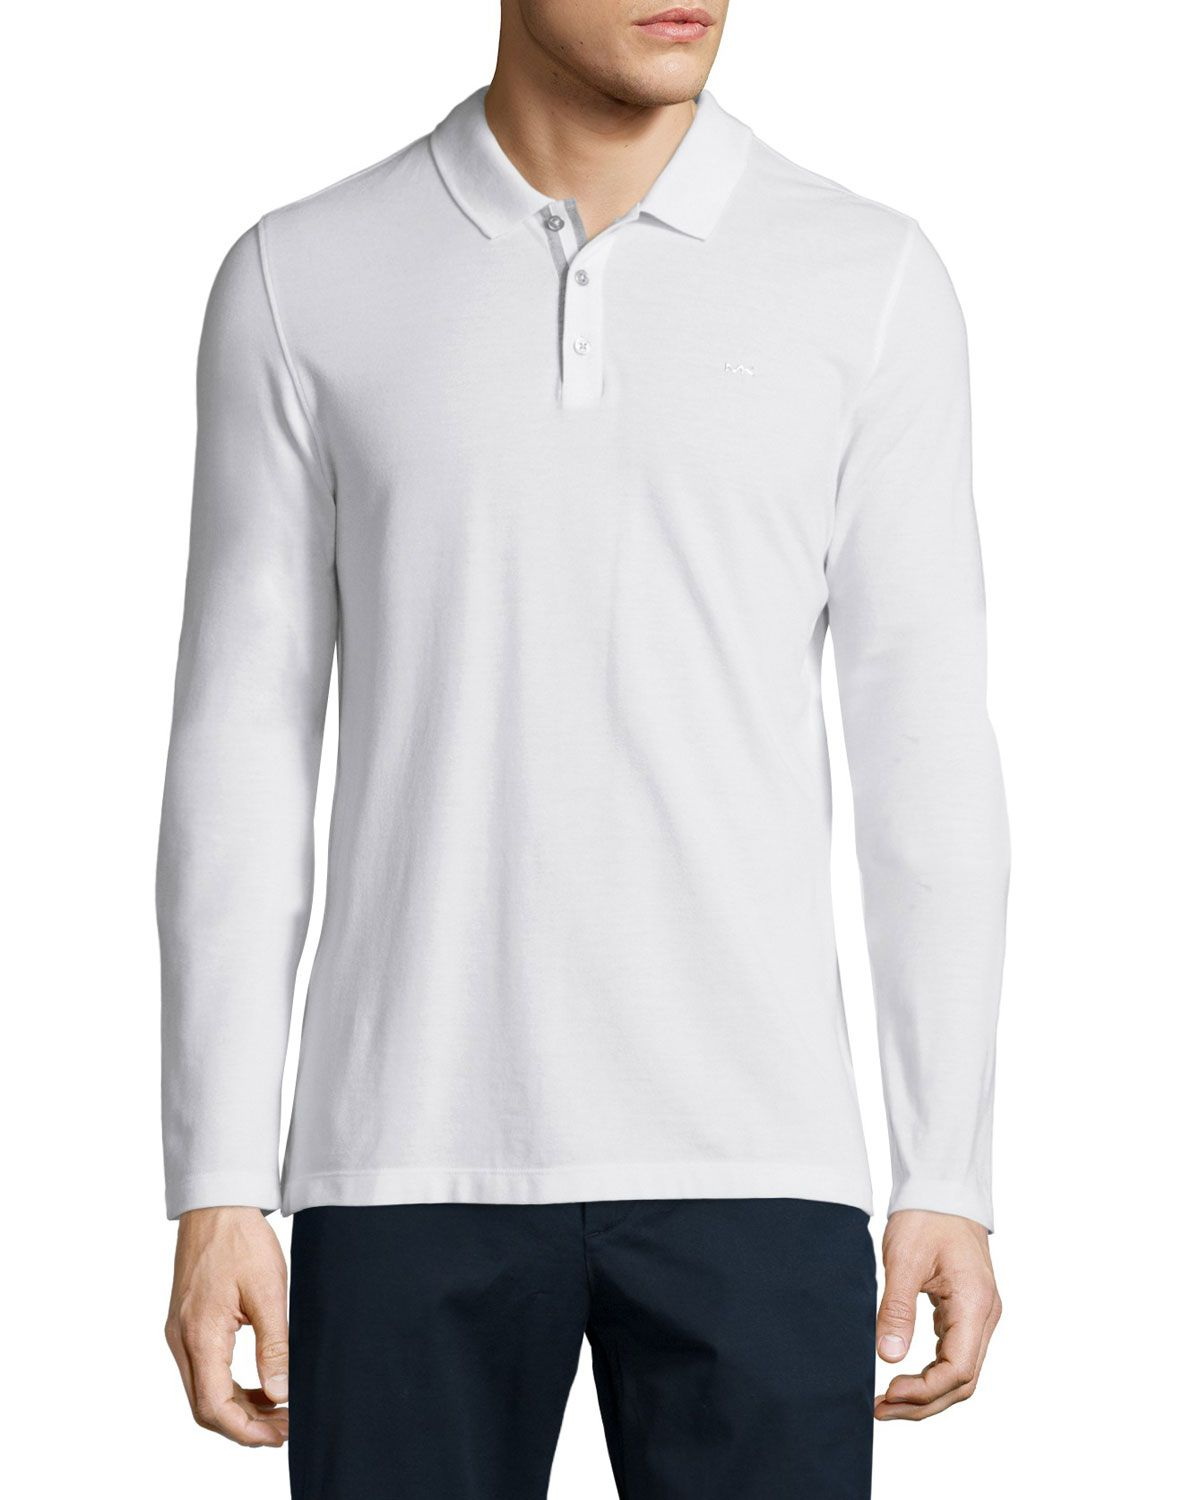 3cea5028 MICHAEL Michael Kors Long-Sleeve Pique Polo Shirt, White, Men's, Size:  XX-LARGE - MICHAEL KORS